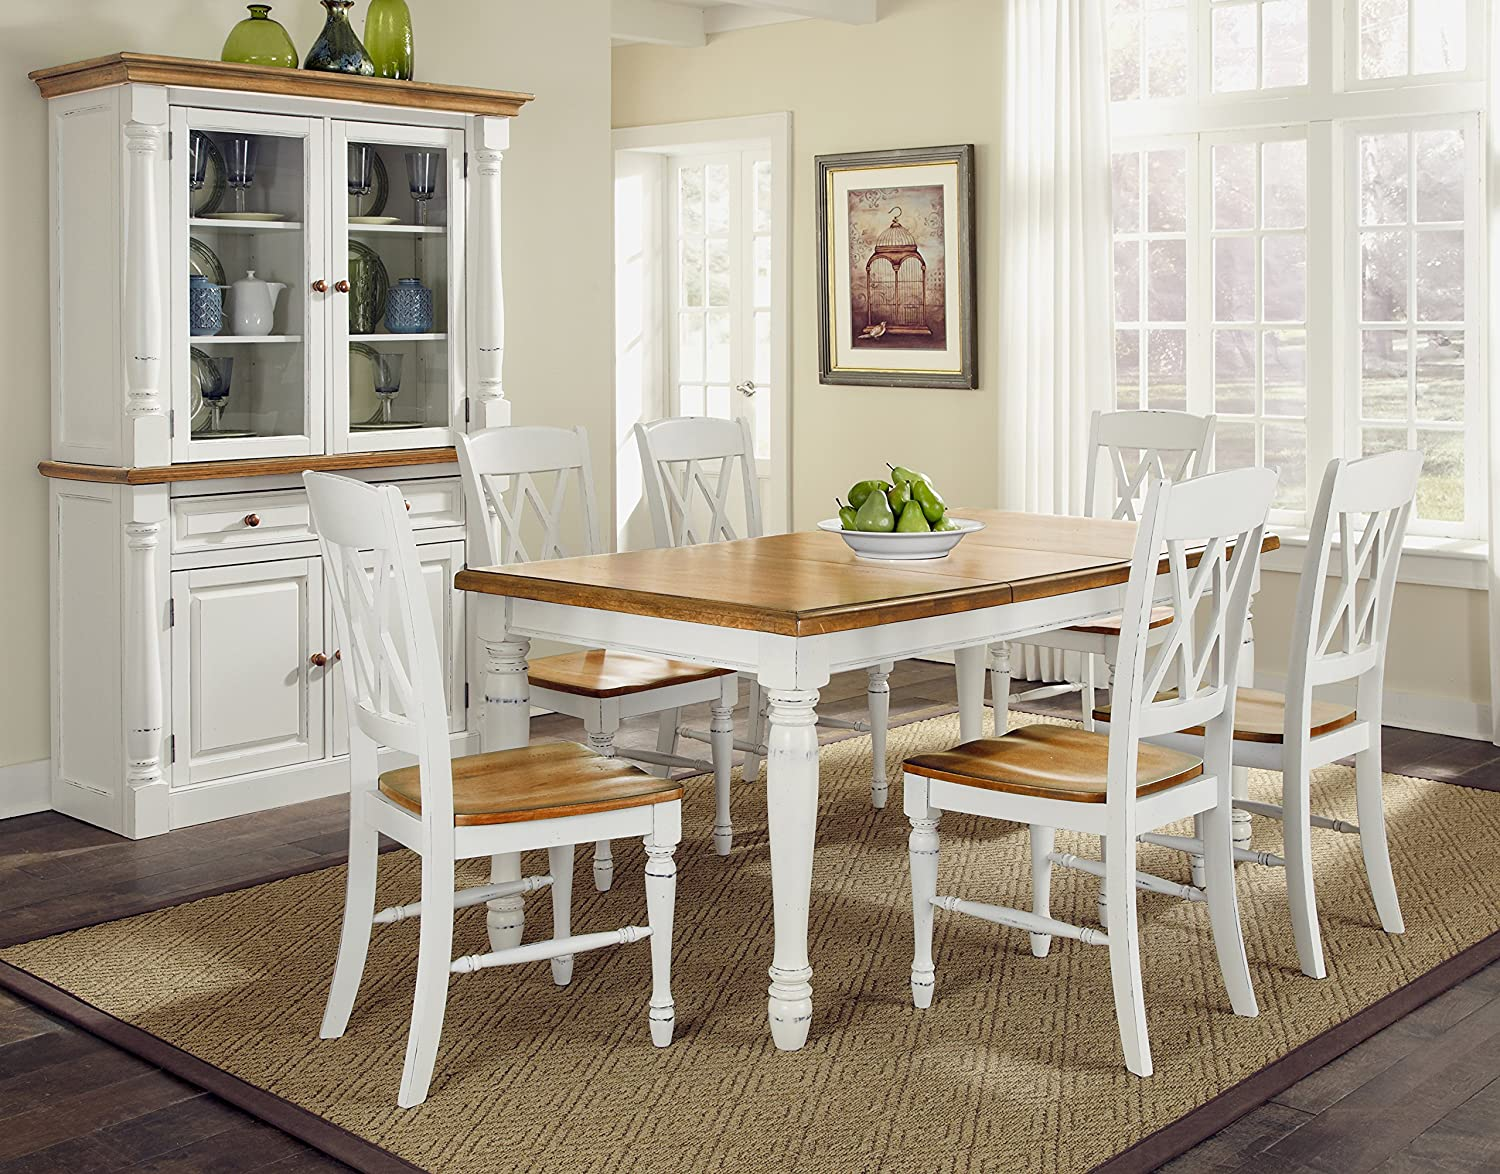 Home Styles Monarch Seven Piece Dining Table Set with Six Double X-Back Chairs with White and Distressed Oak Finish, Strong and Sturdy Crafted from Hardwood solids, Engineered Wood and Veneers, with Removable 18-inch Leaf